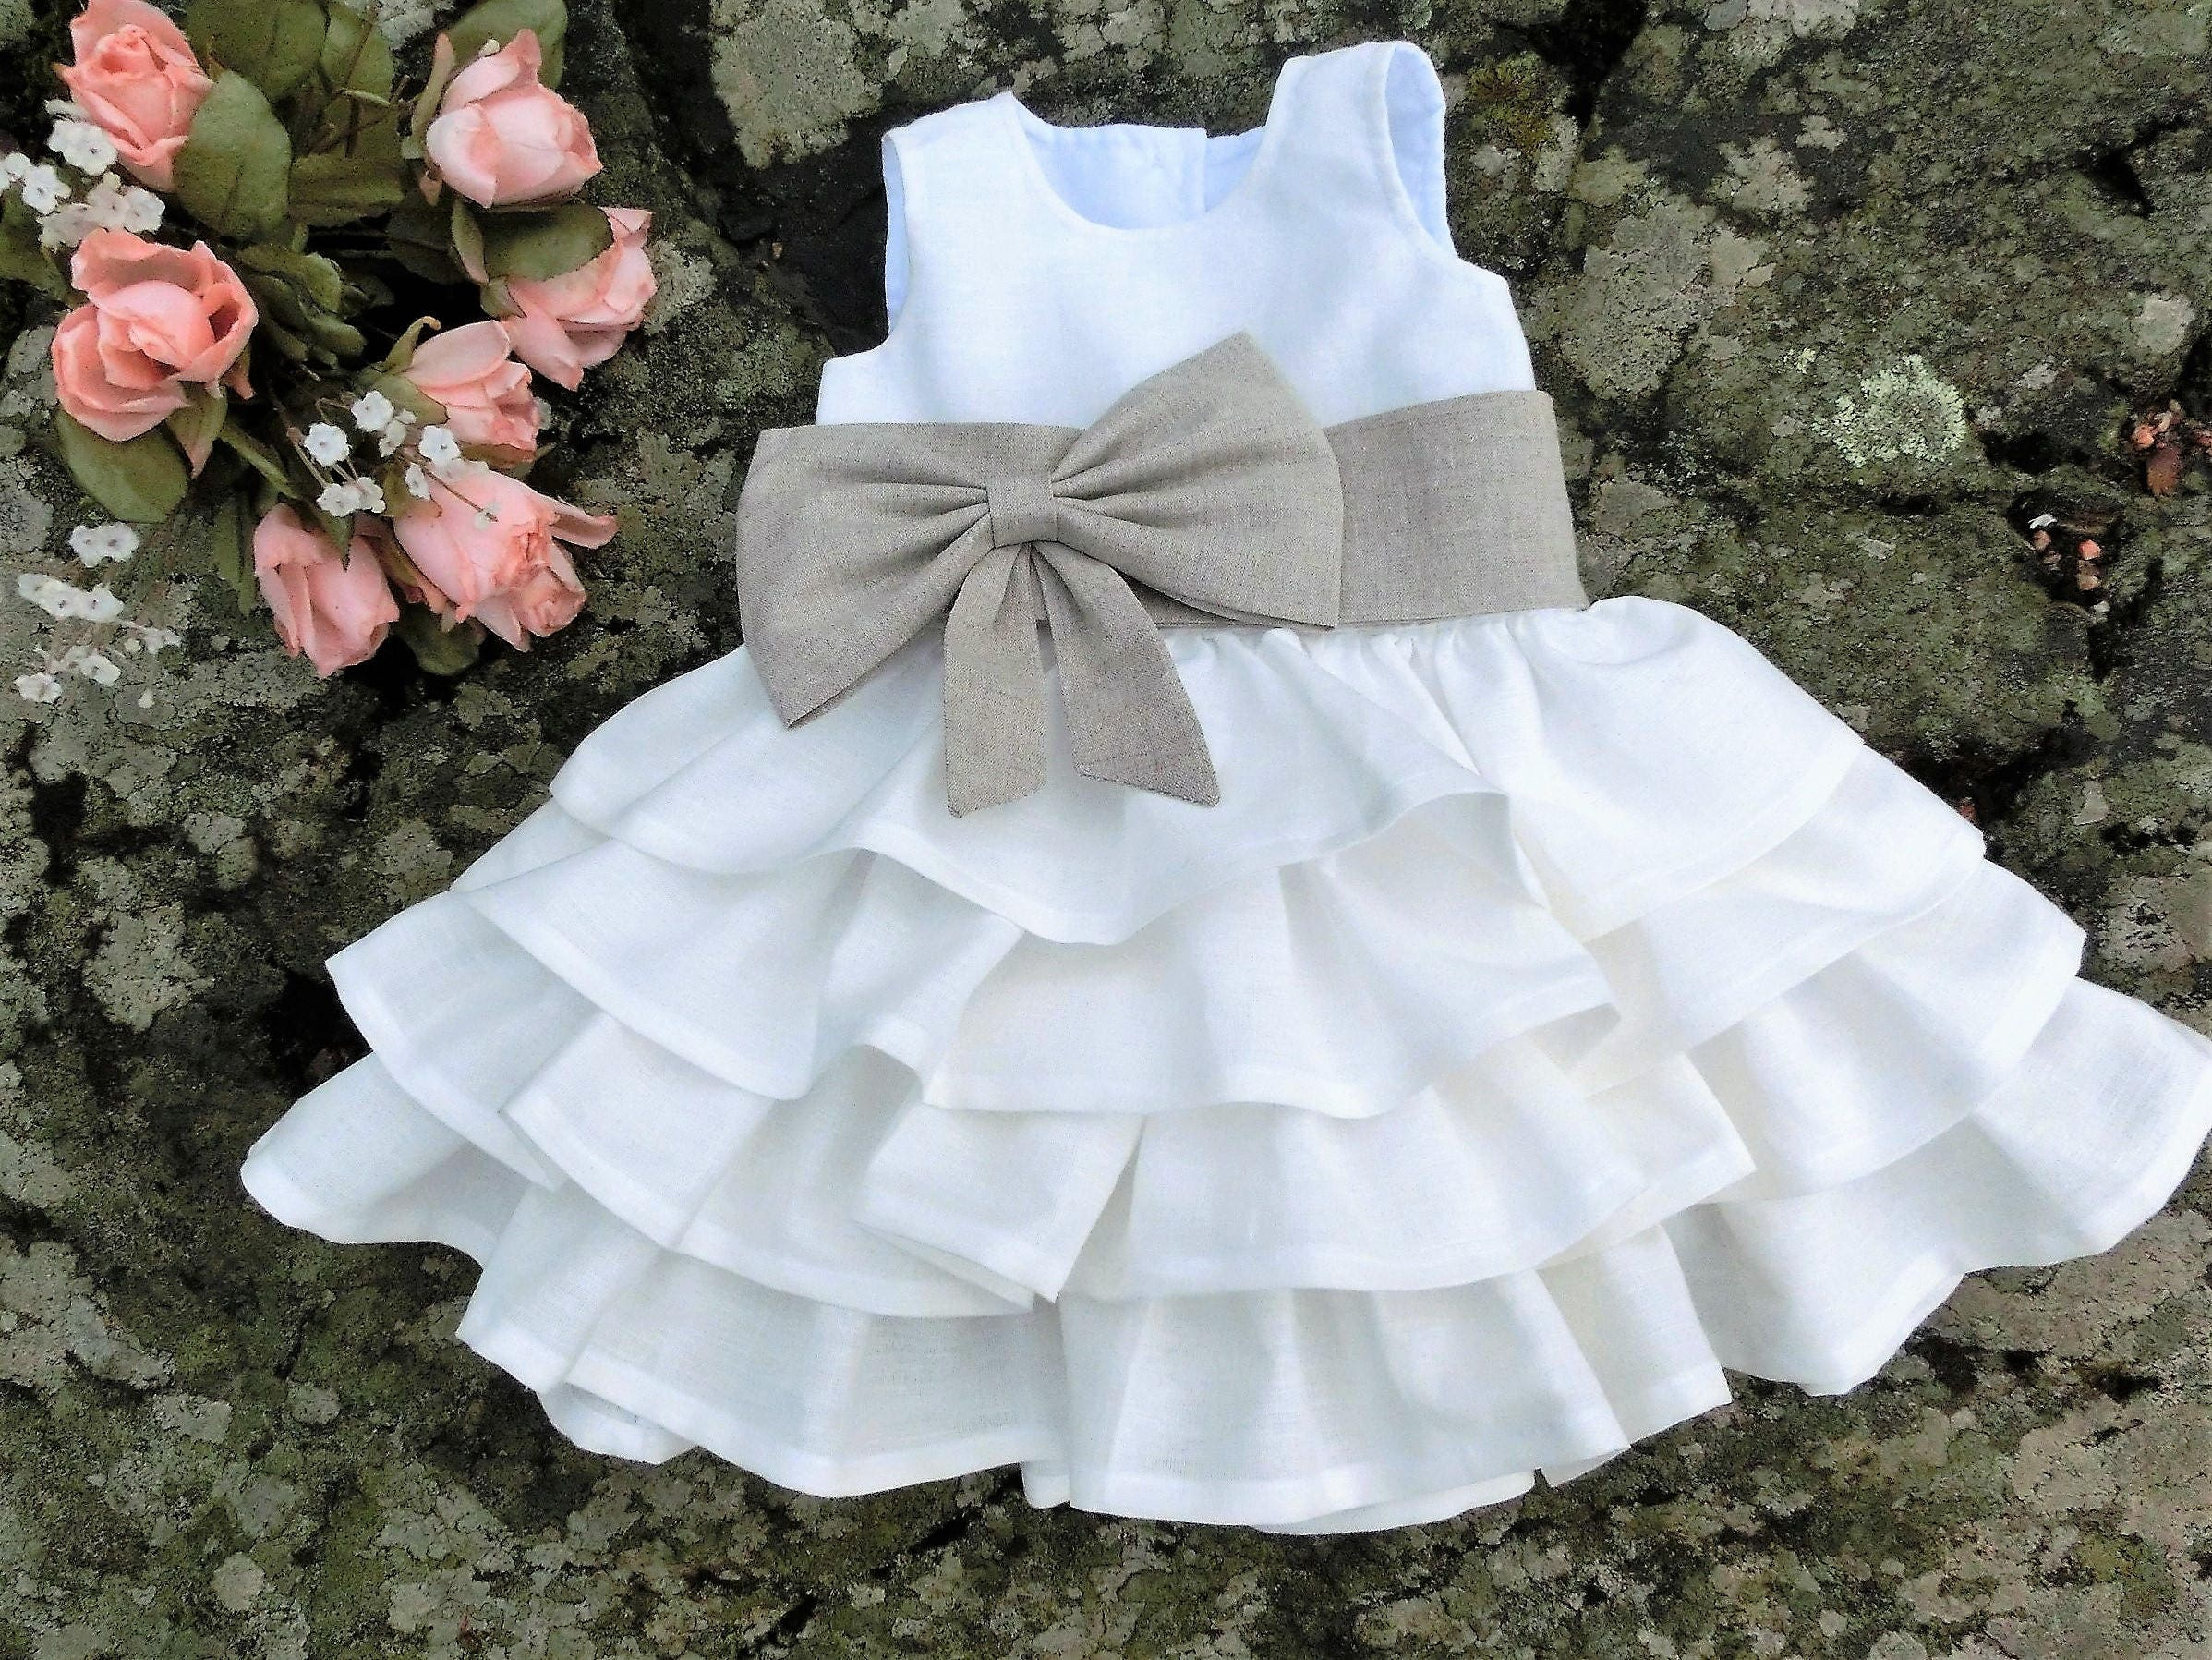 Baby ruffle dress Linen ruffle dress Baby girl dress White